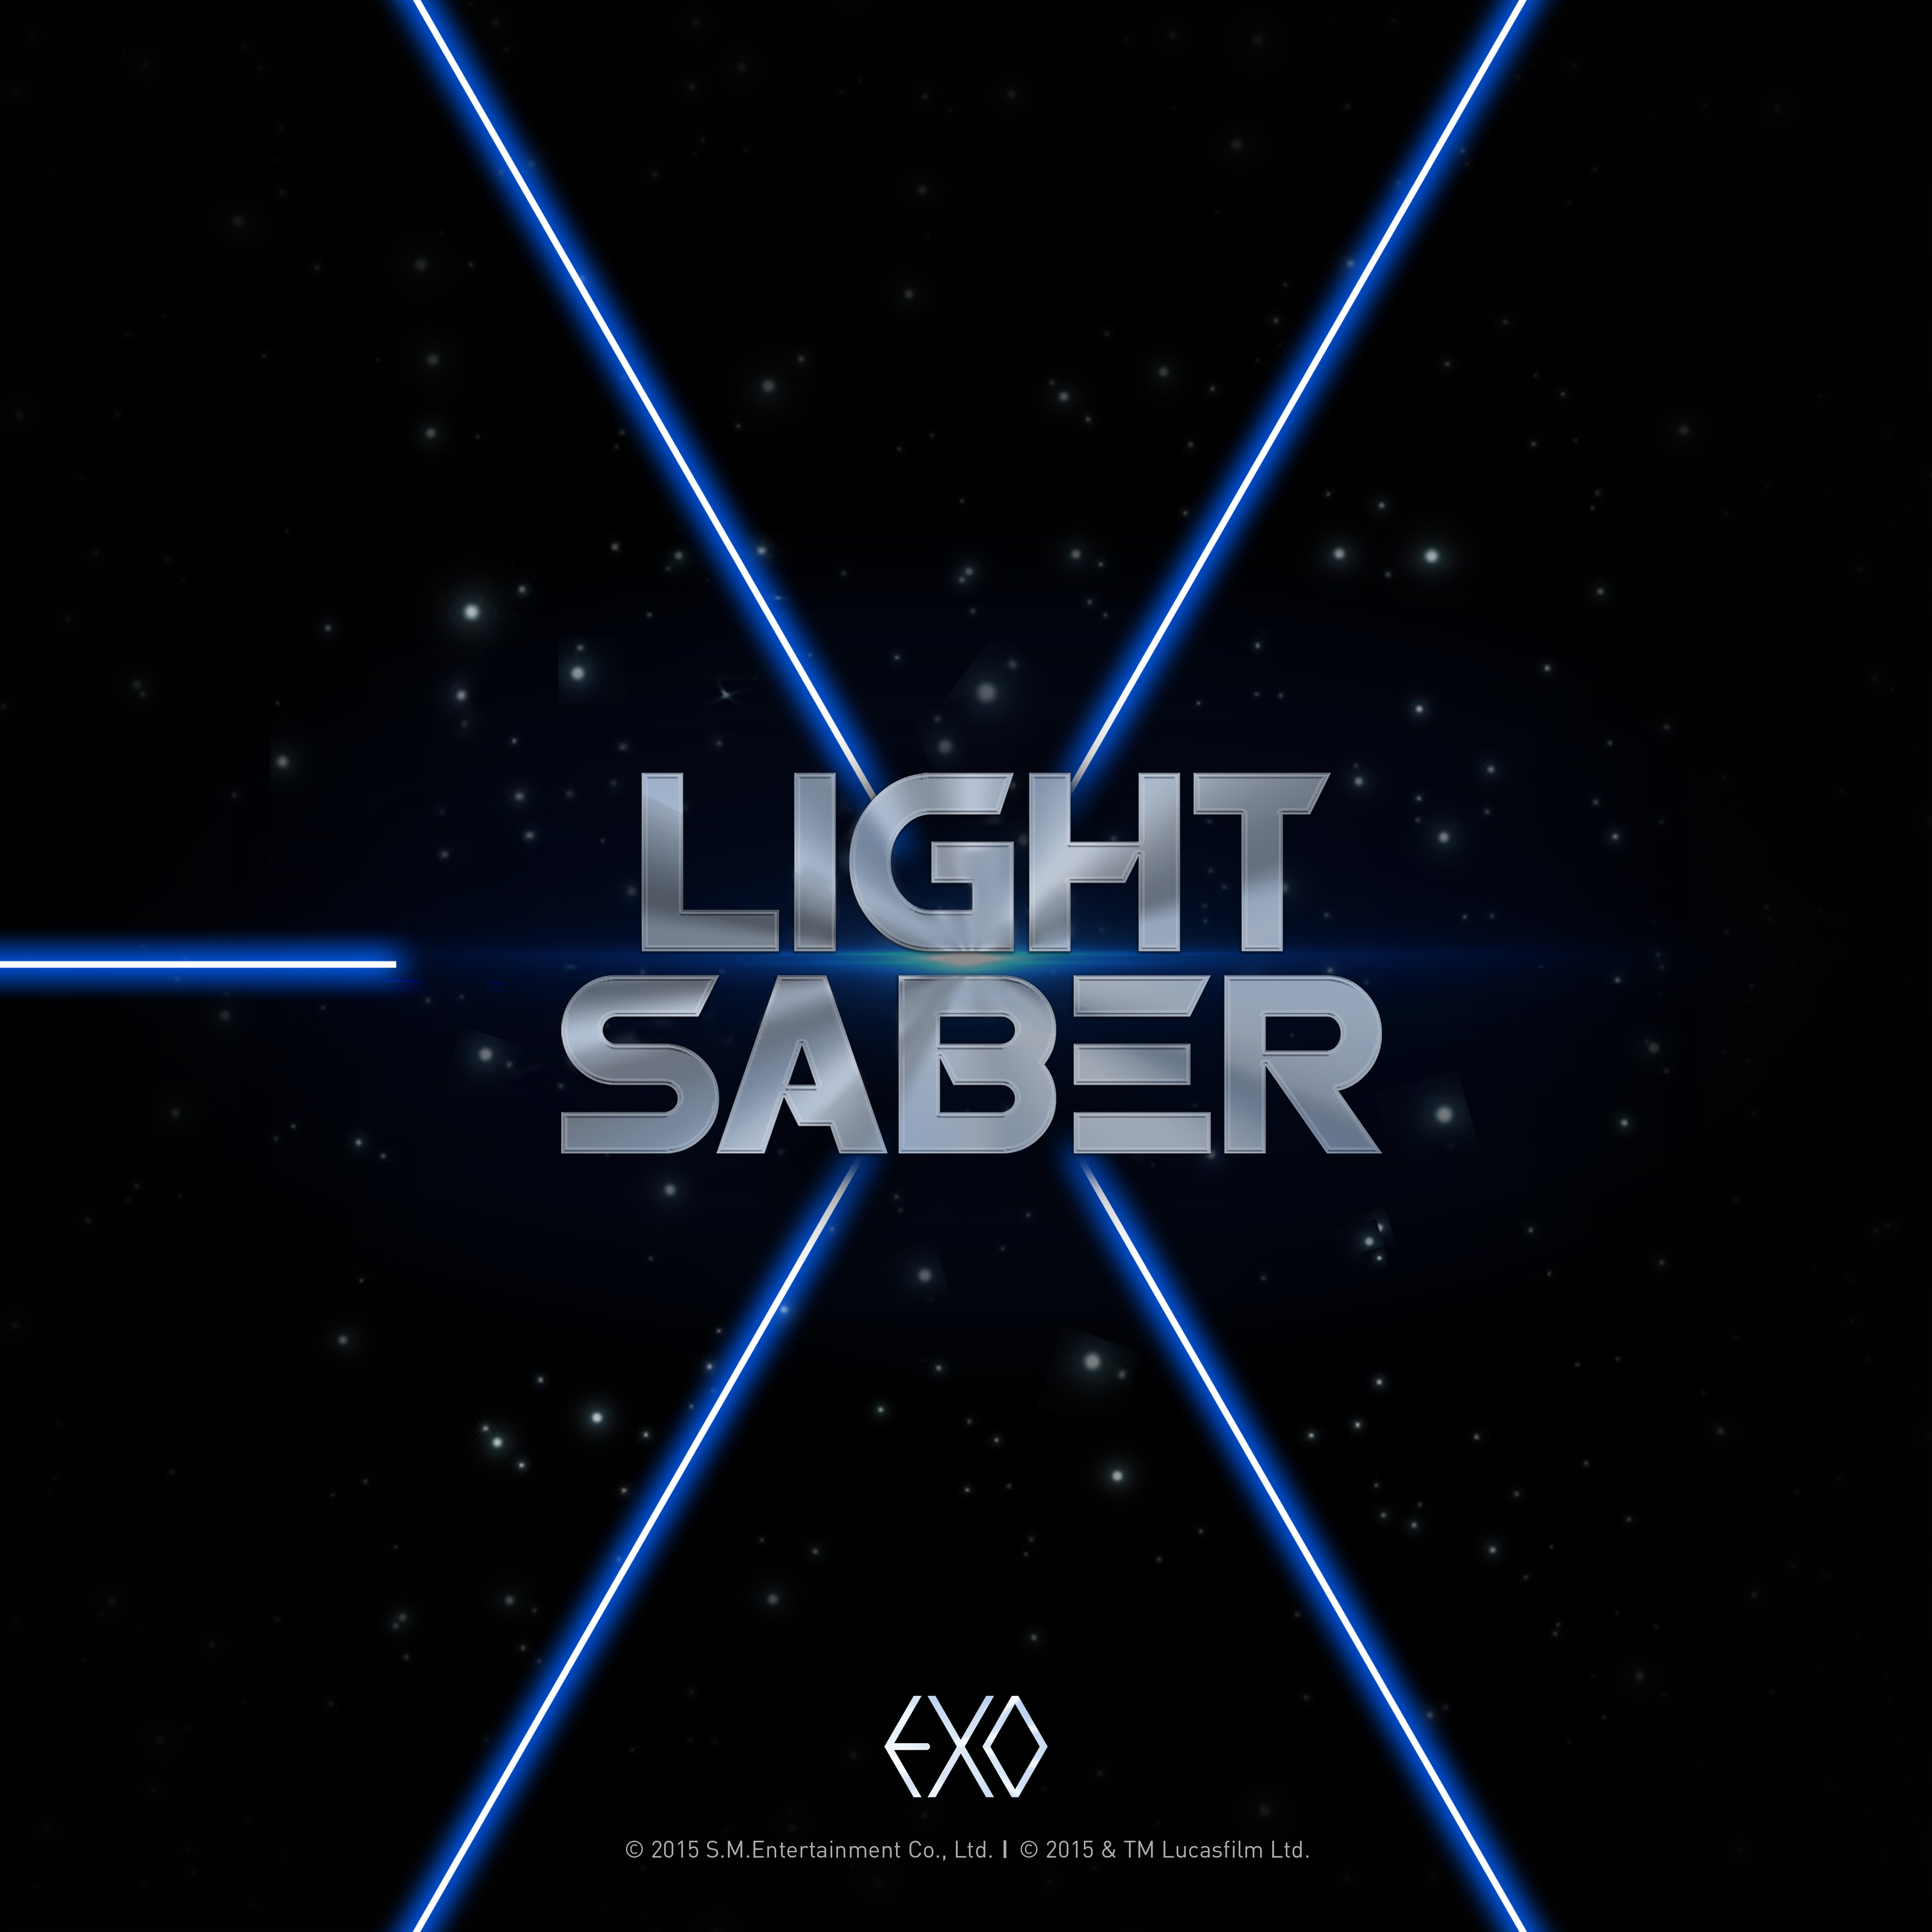 EXO : Lightsaber MV + MV Download